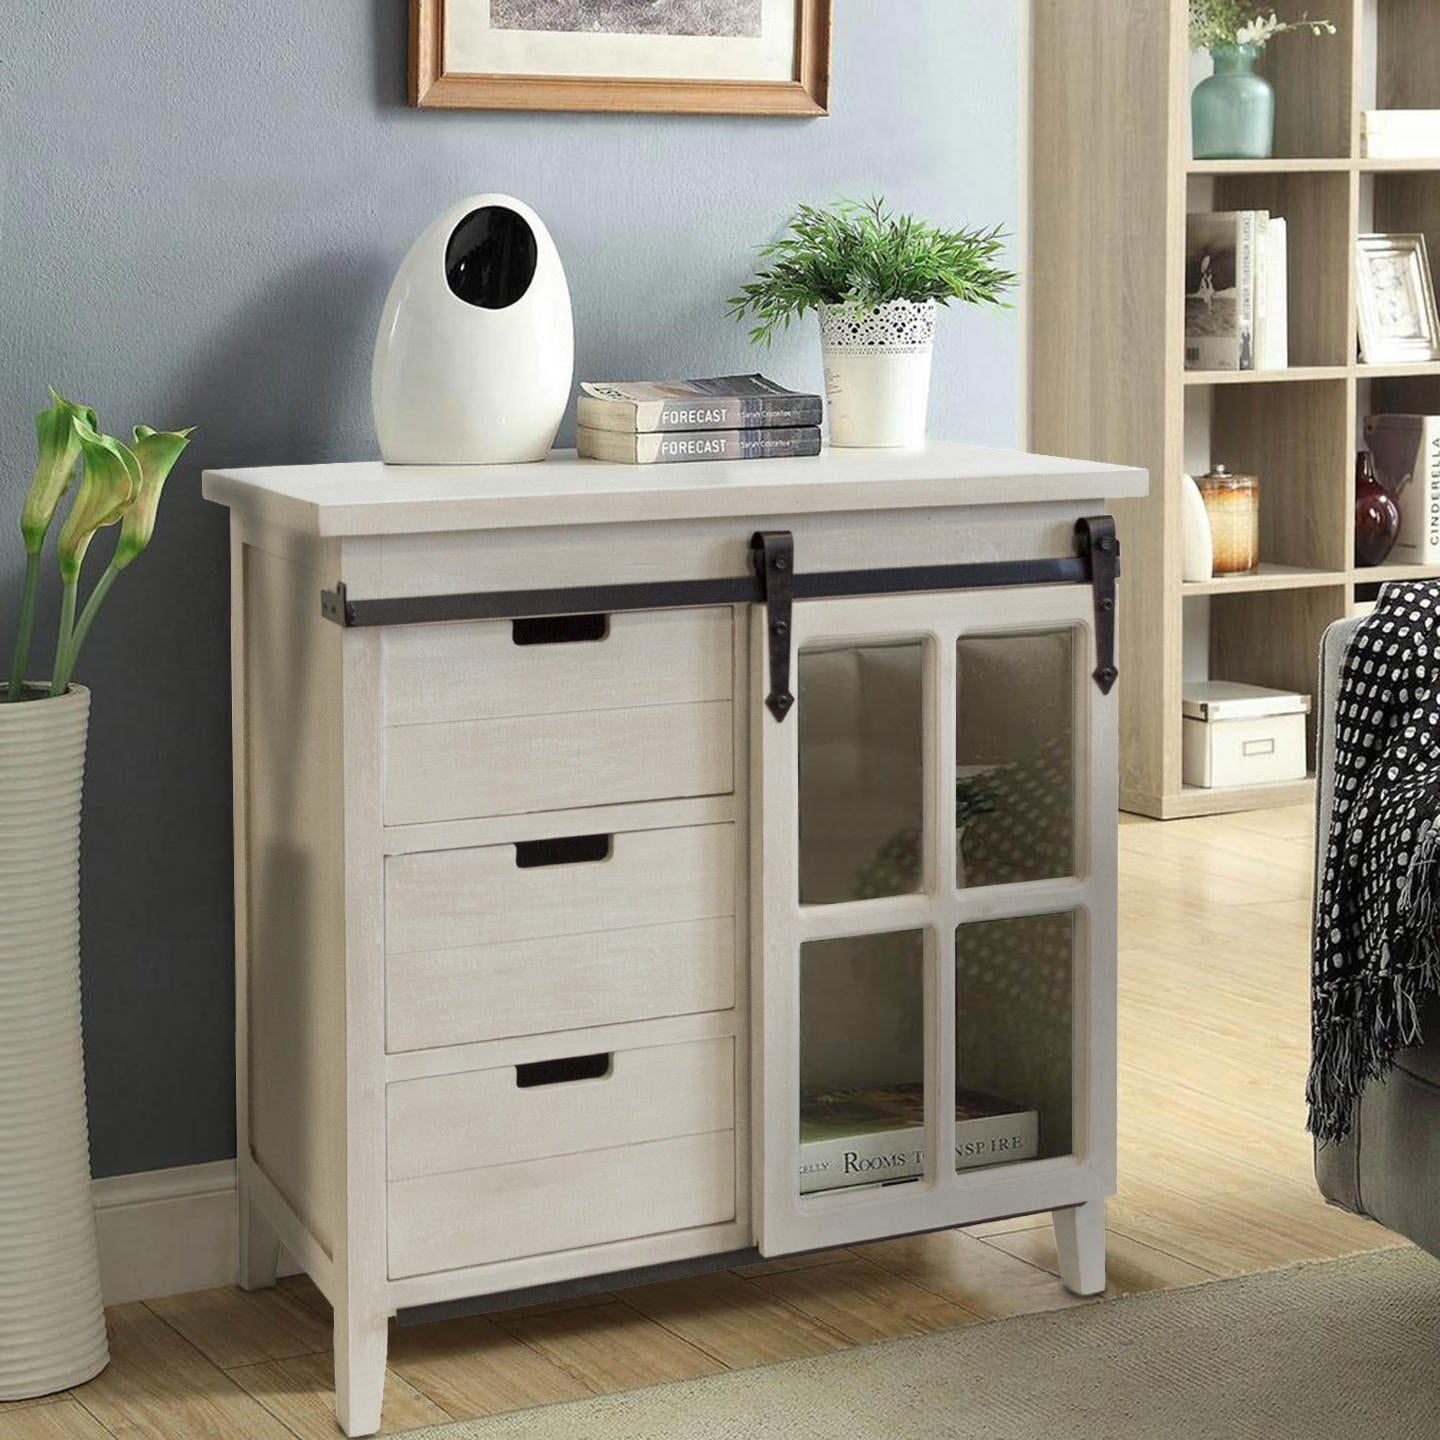 Os Home Farmhouse Weathered White Finish Wood Barn Door Style Sliding Glass Door Storage Cabinet With Three Drawers Overstock 25572123